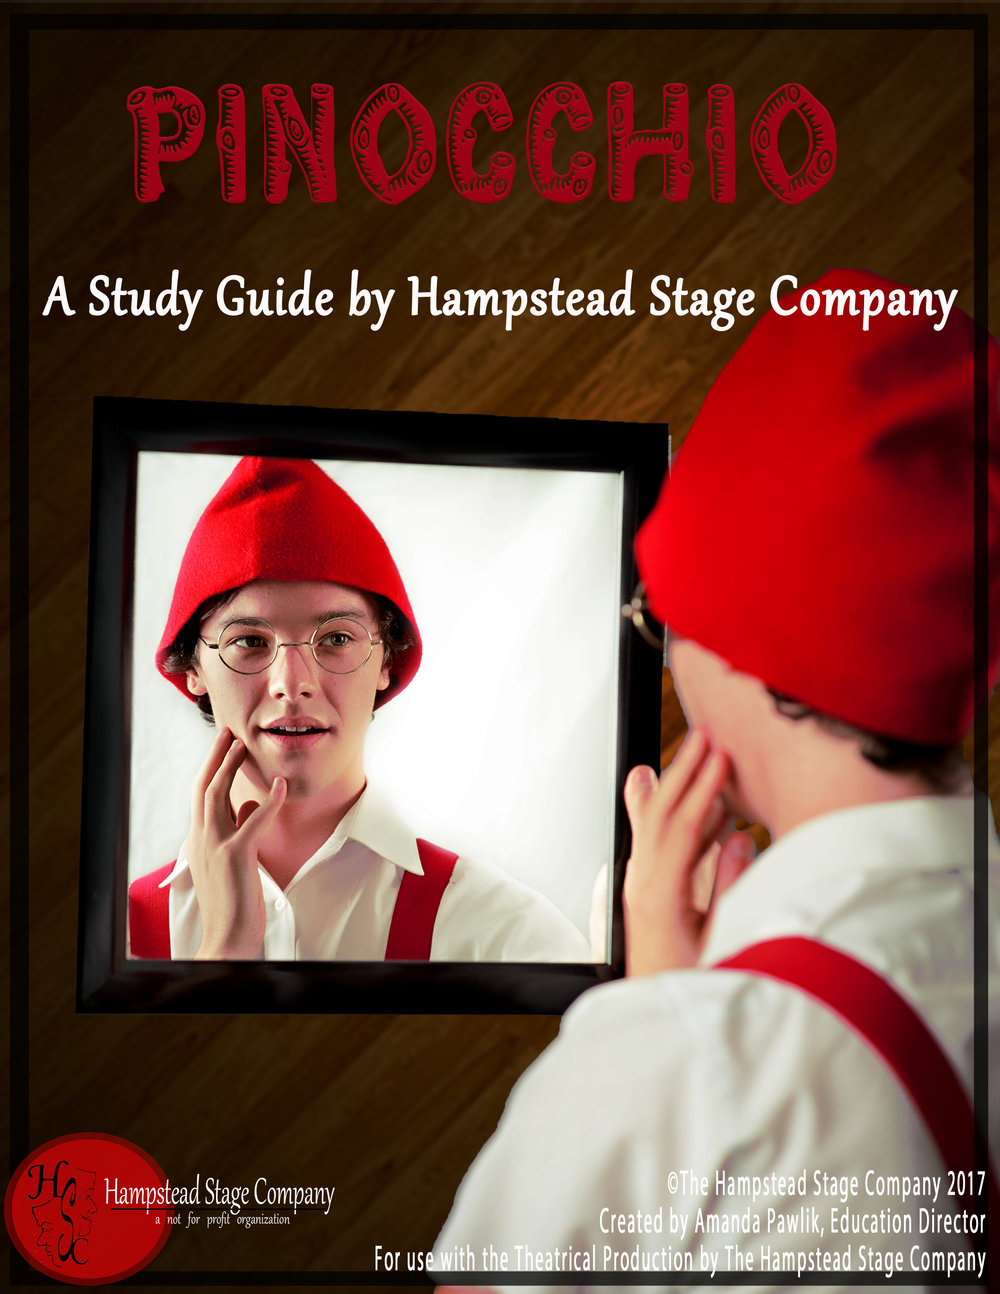 Pinocchio study guide cover.jpg